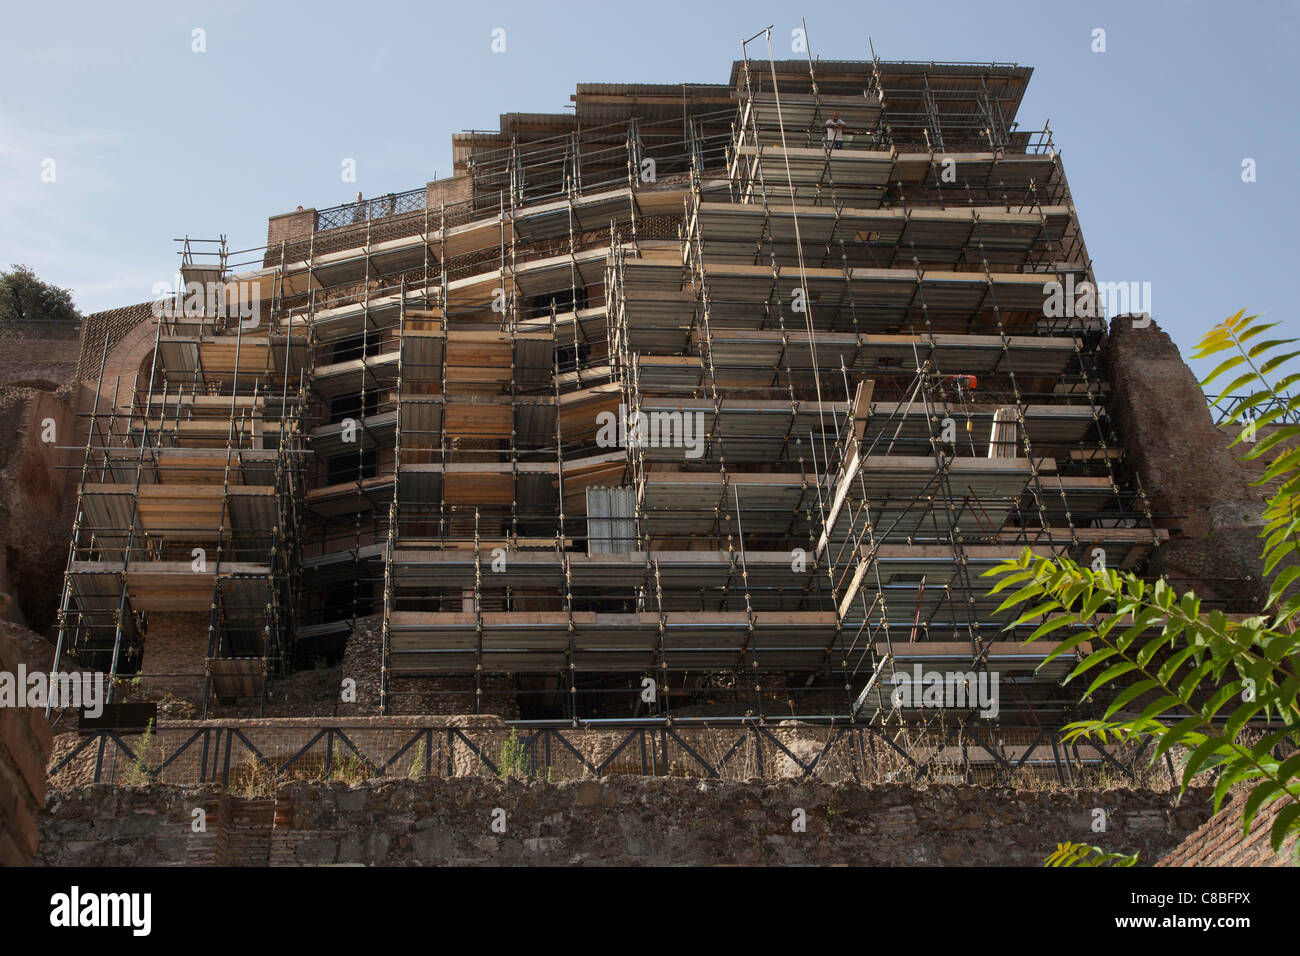 Eleven Stories of Scaffolding at the Fora Romana Rome Stock Photo